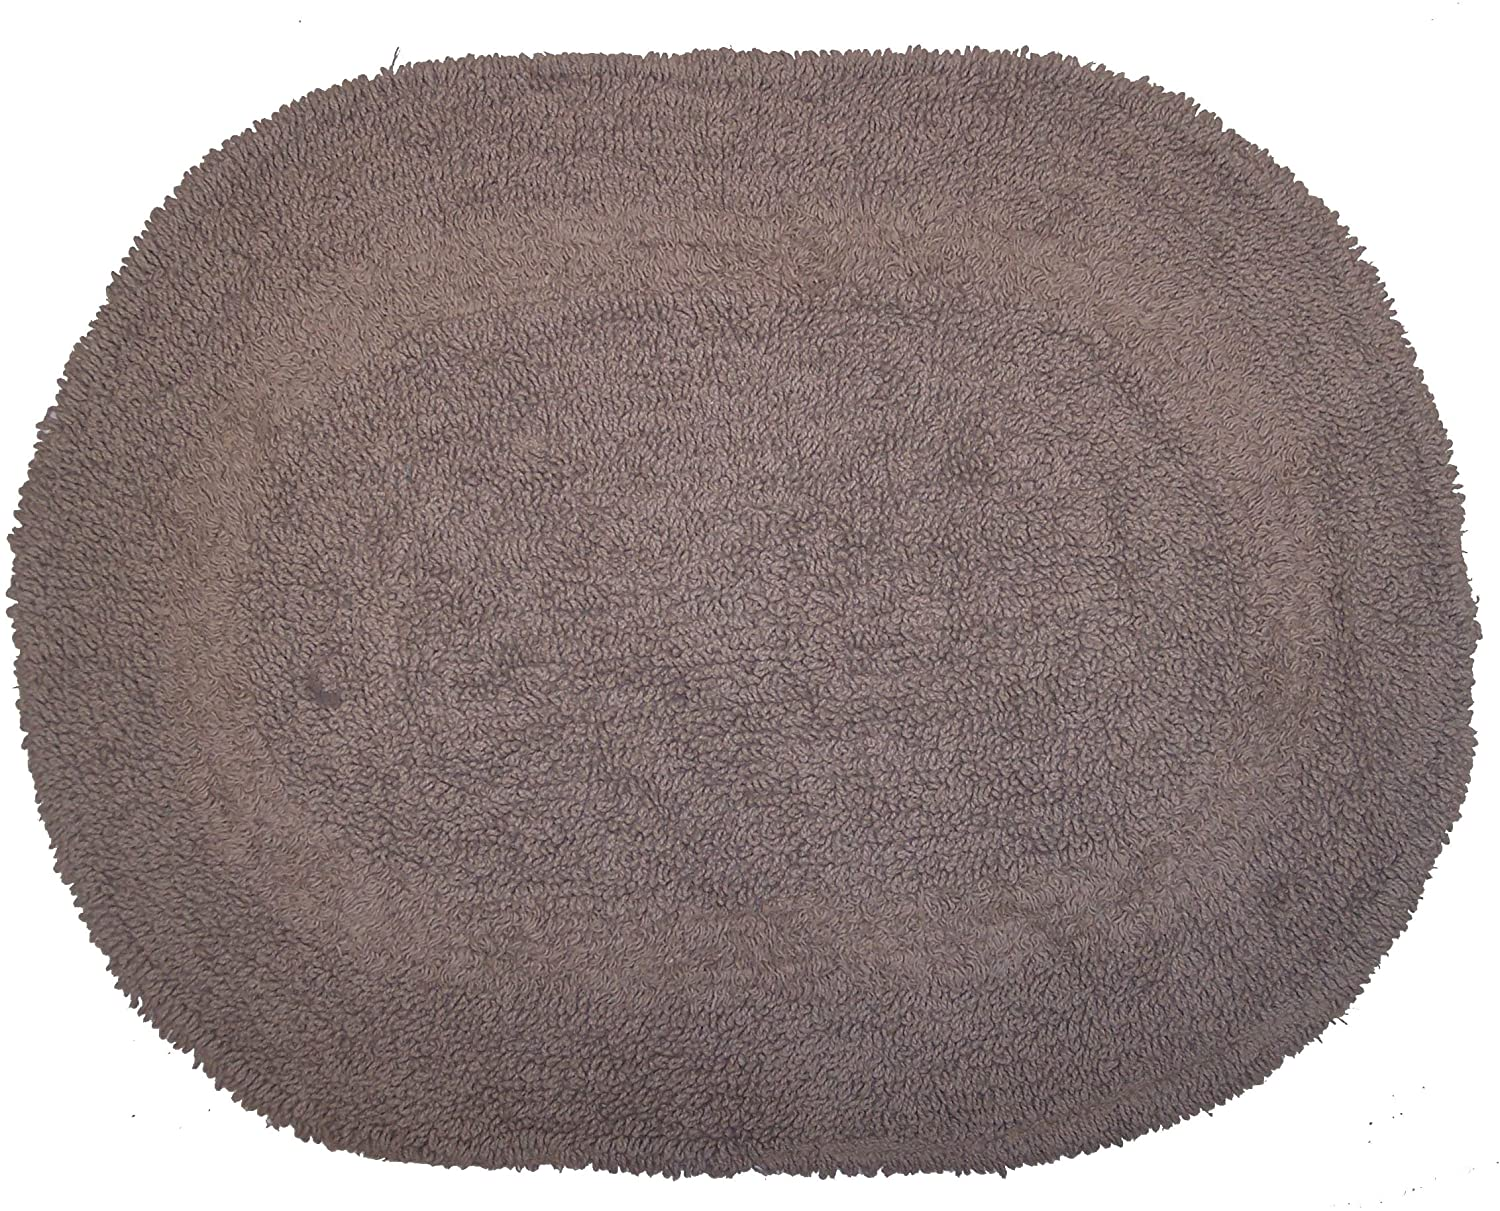 Oval bathroom rug - Amazon Com Revere Mills 4 Pack Cotton 17 By 24 Inch Oval Reversible Bath Rugs Baby Pink Home Kitchen